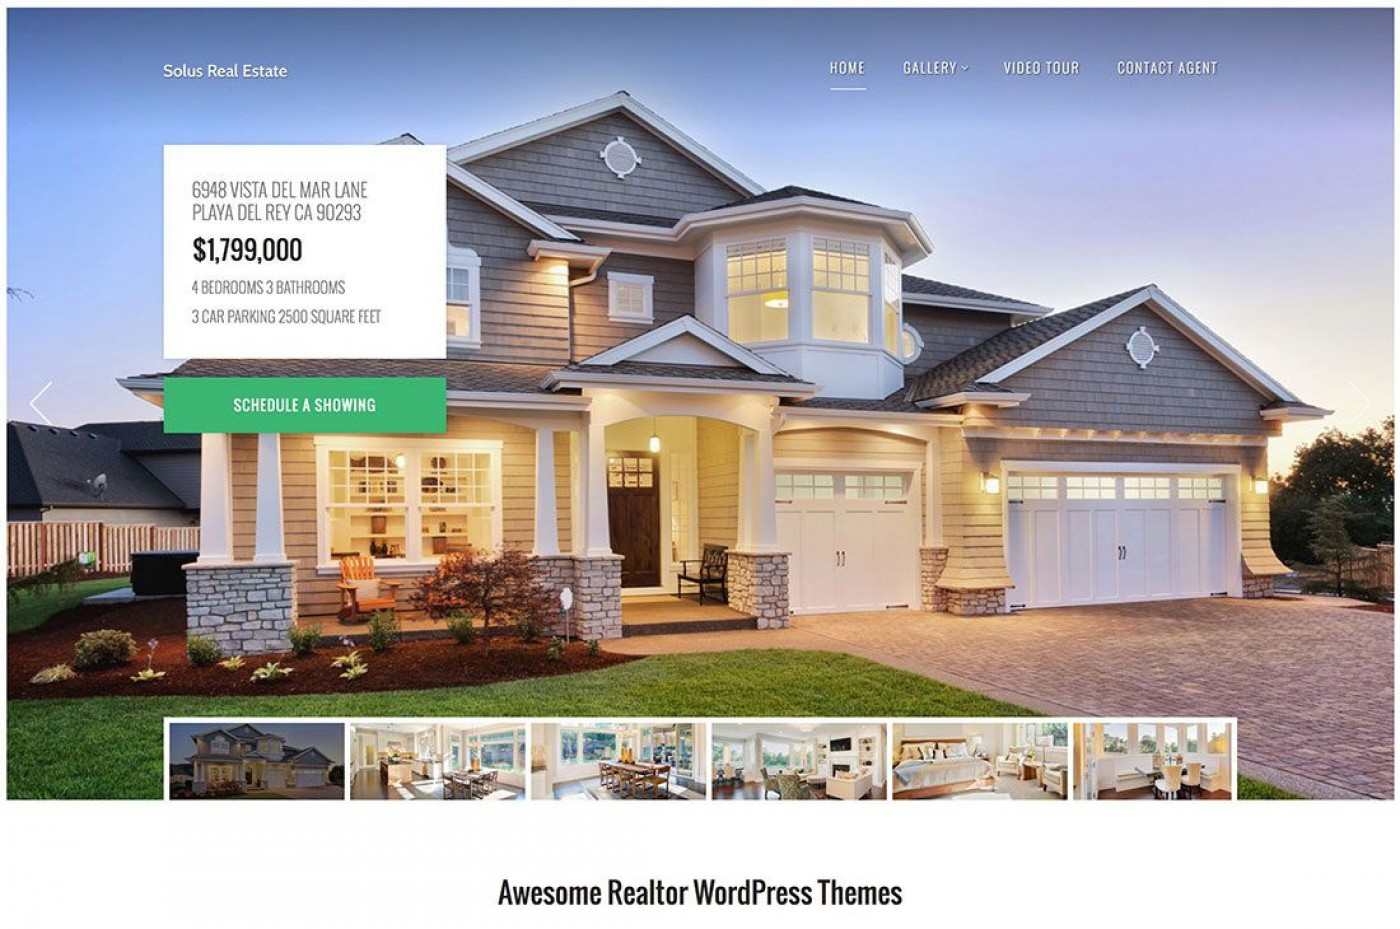 007 Imposing Real Estate Template Wordpres Inspiration  Homepres - Theme Free Download Realtyspace1400